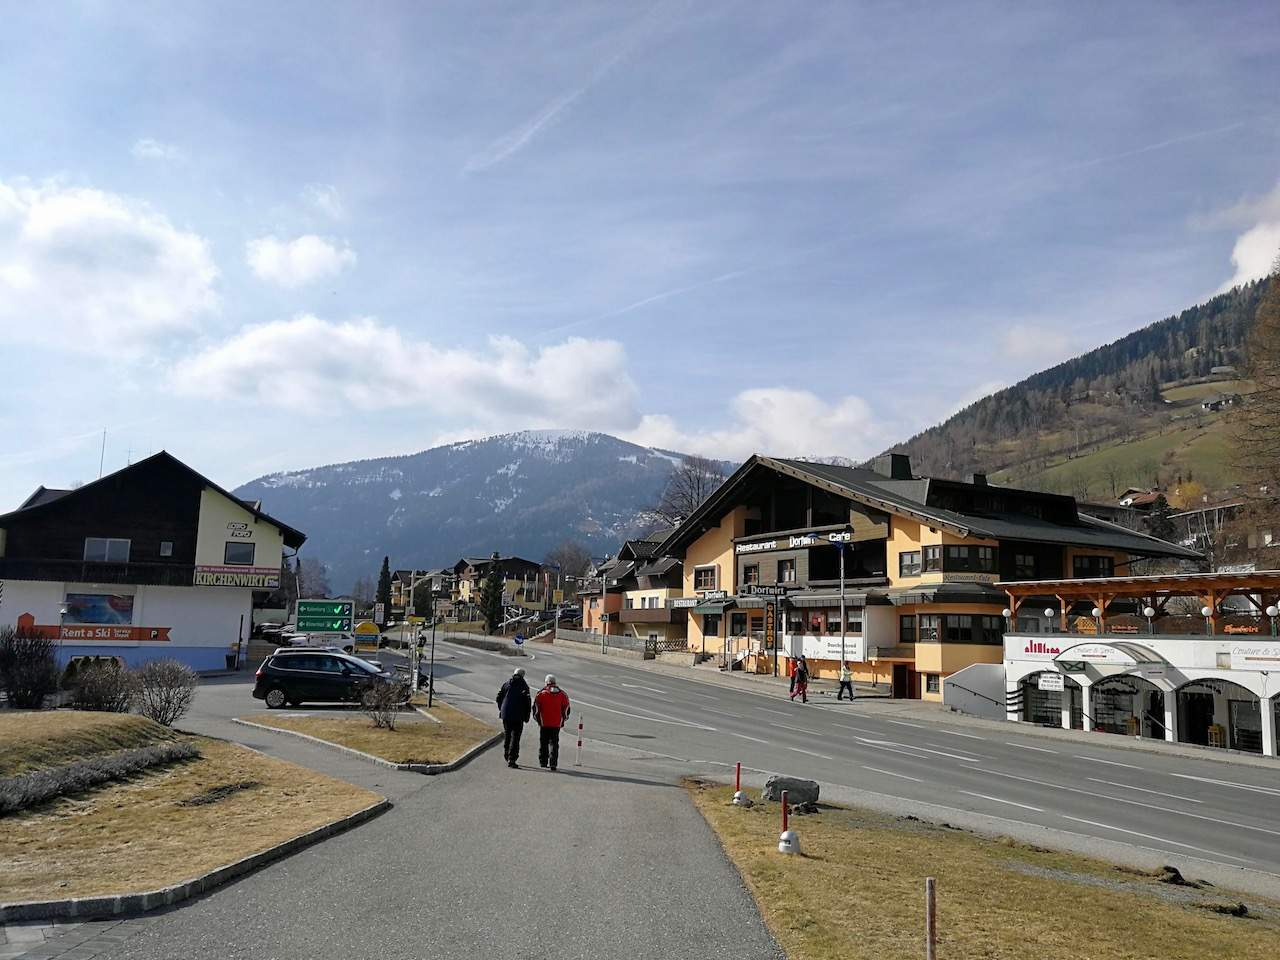 The alpine resort of Bad Kleinkirchheim